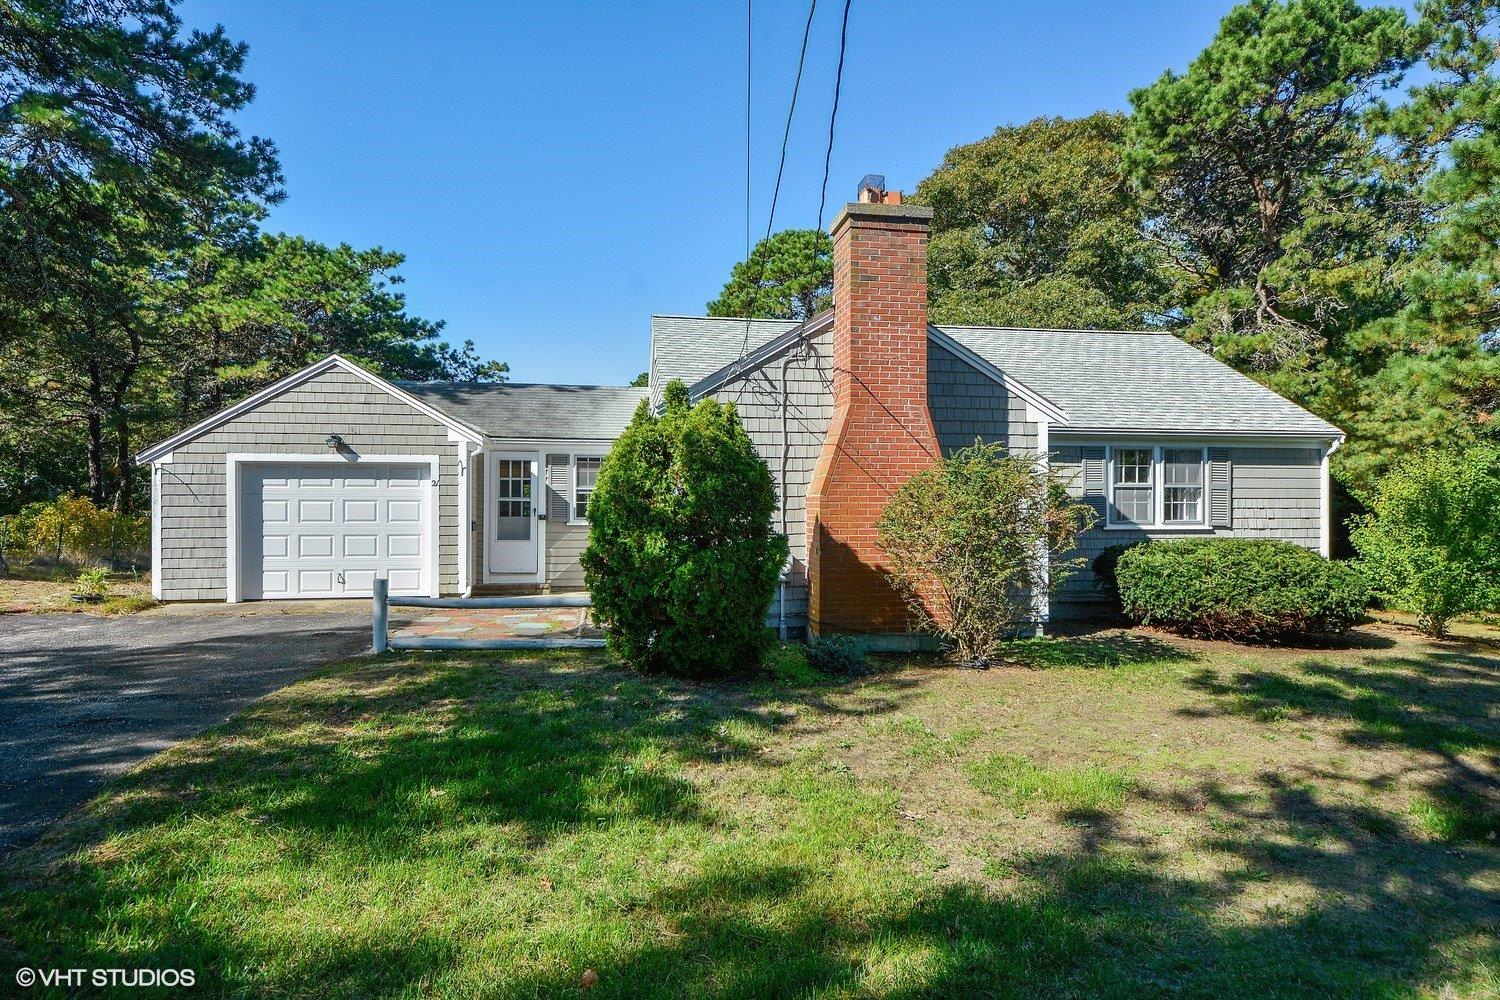 21 Woodside Park Road, West Dennis, MA 02670 for sale by Cranberry Real Estate 508-394-1700